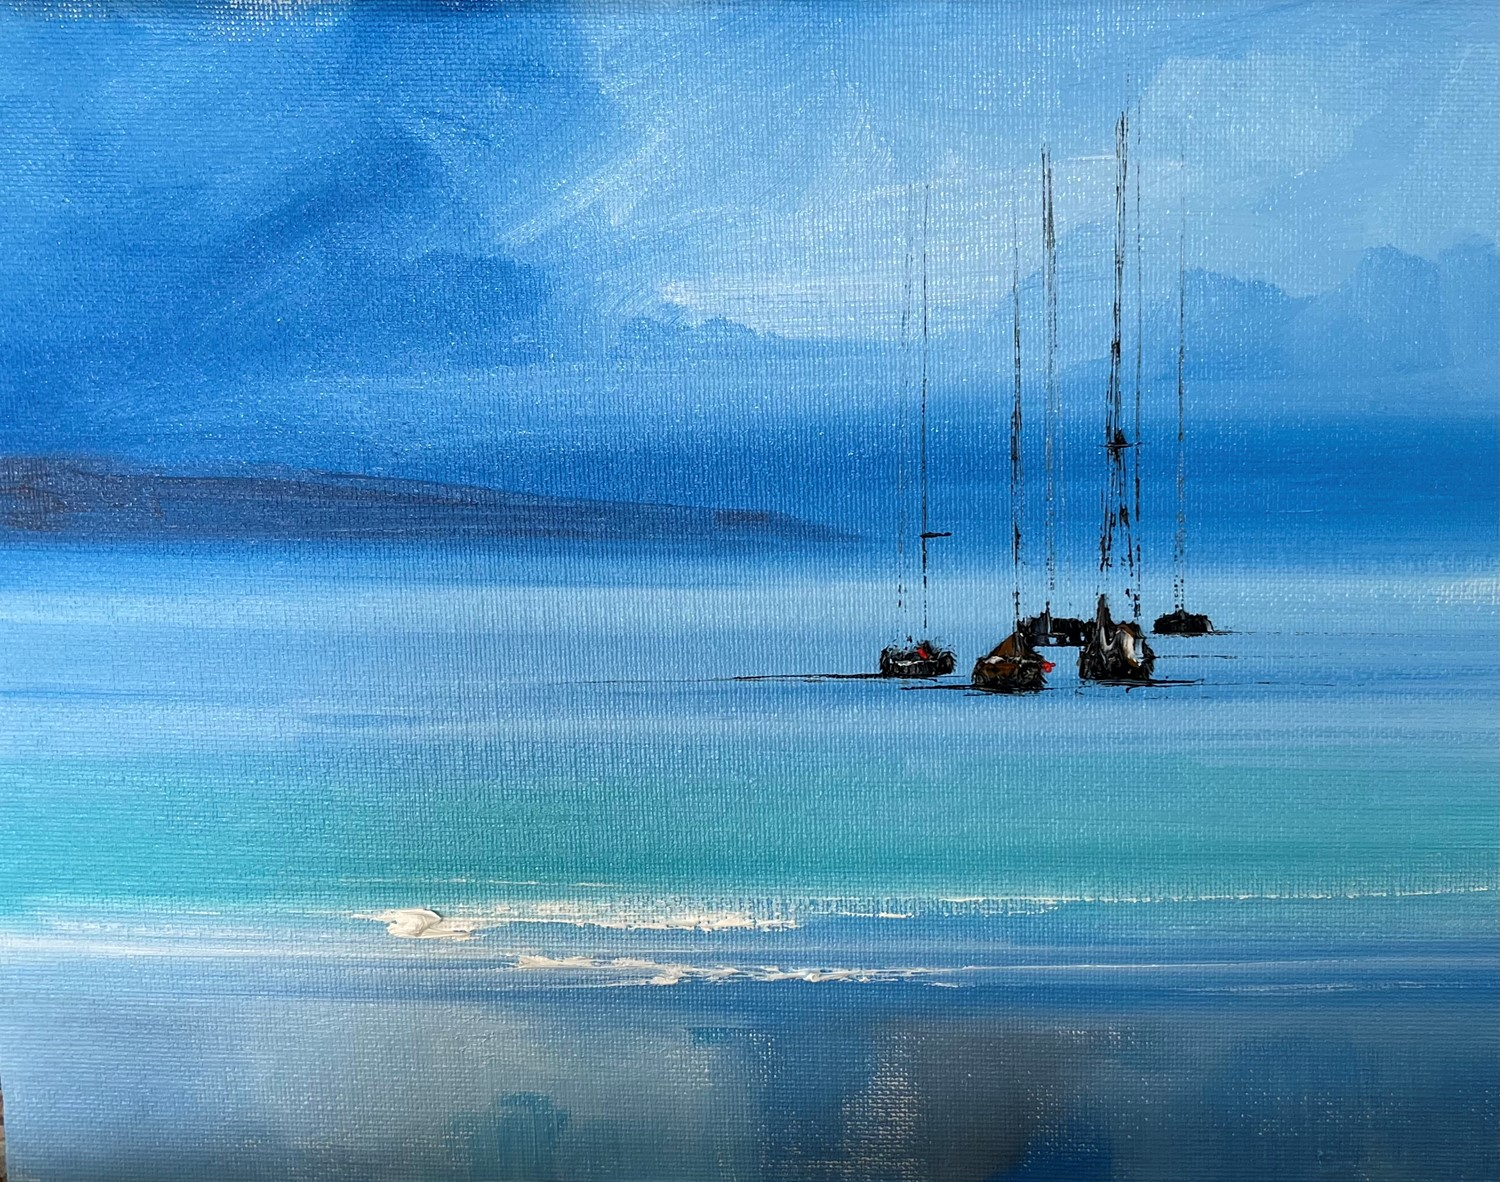 'Turquoise and Blue ' by artist Rosanne Barr